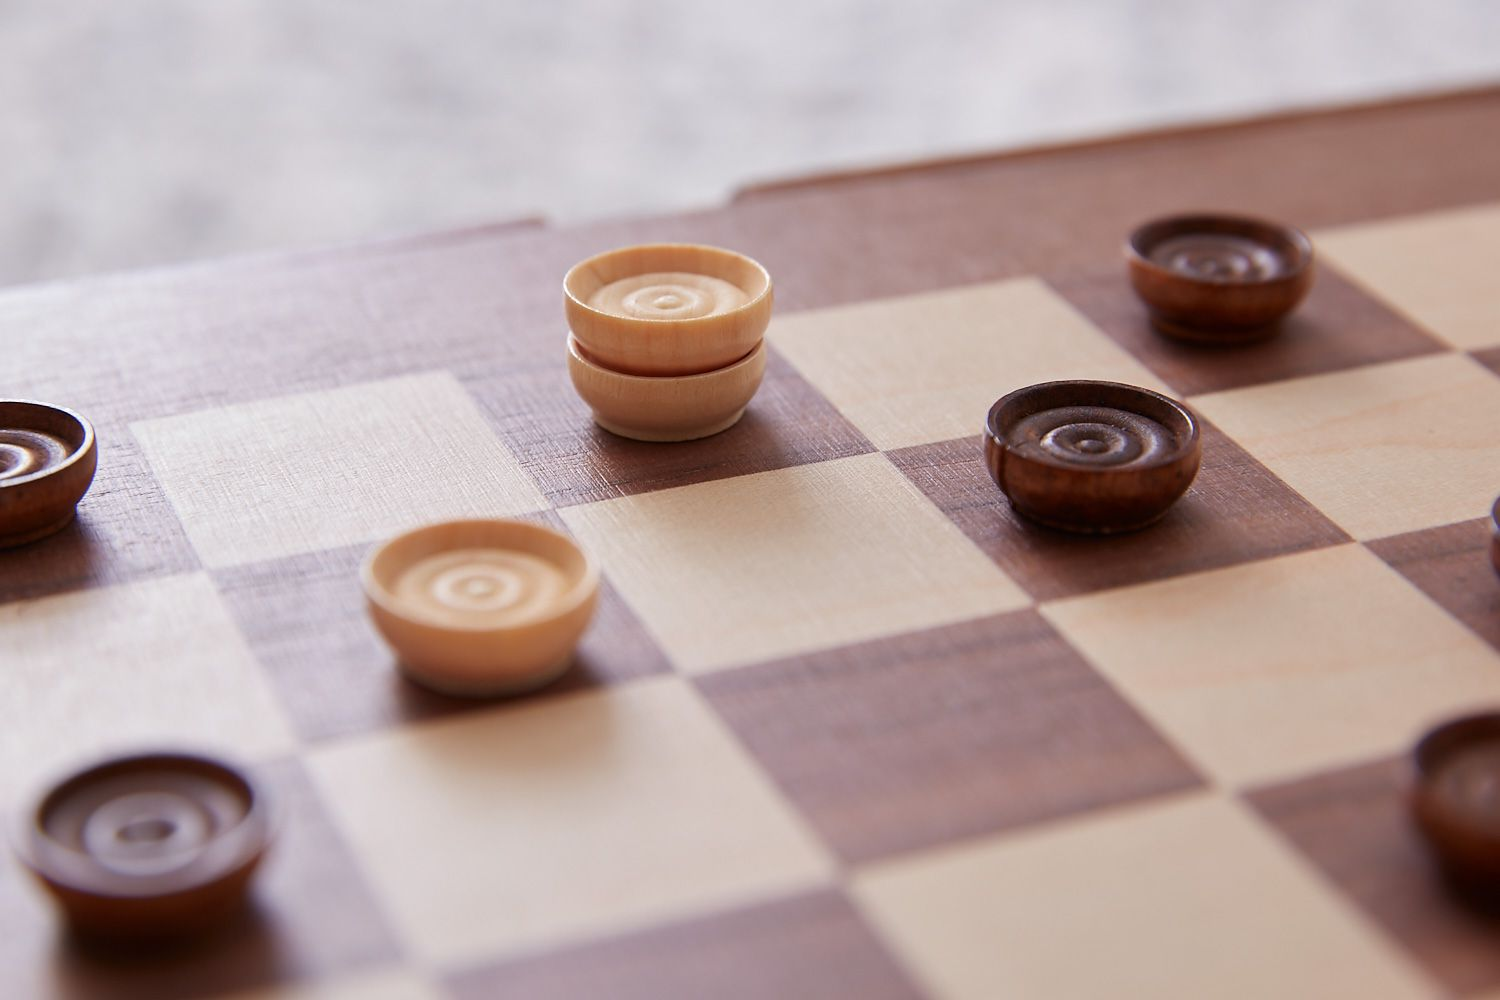 Basic Strategies For Winning At Checkers,Moon Flowers Tattoo